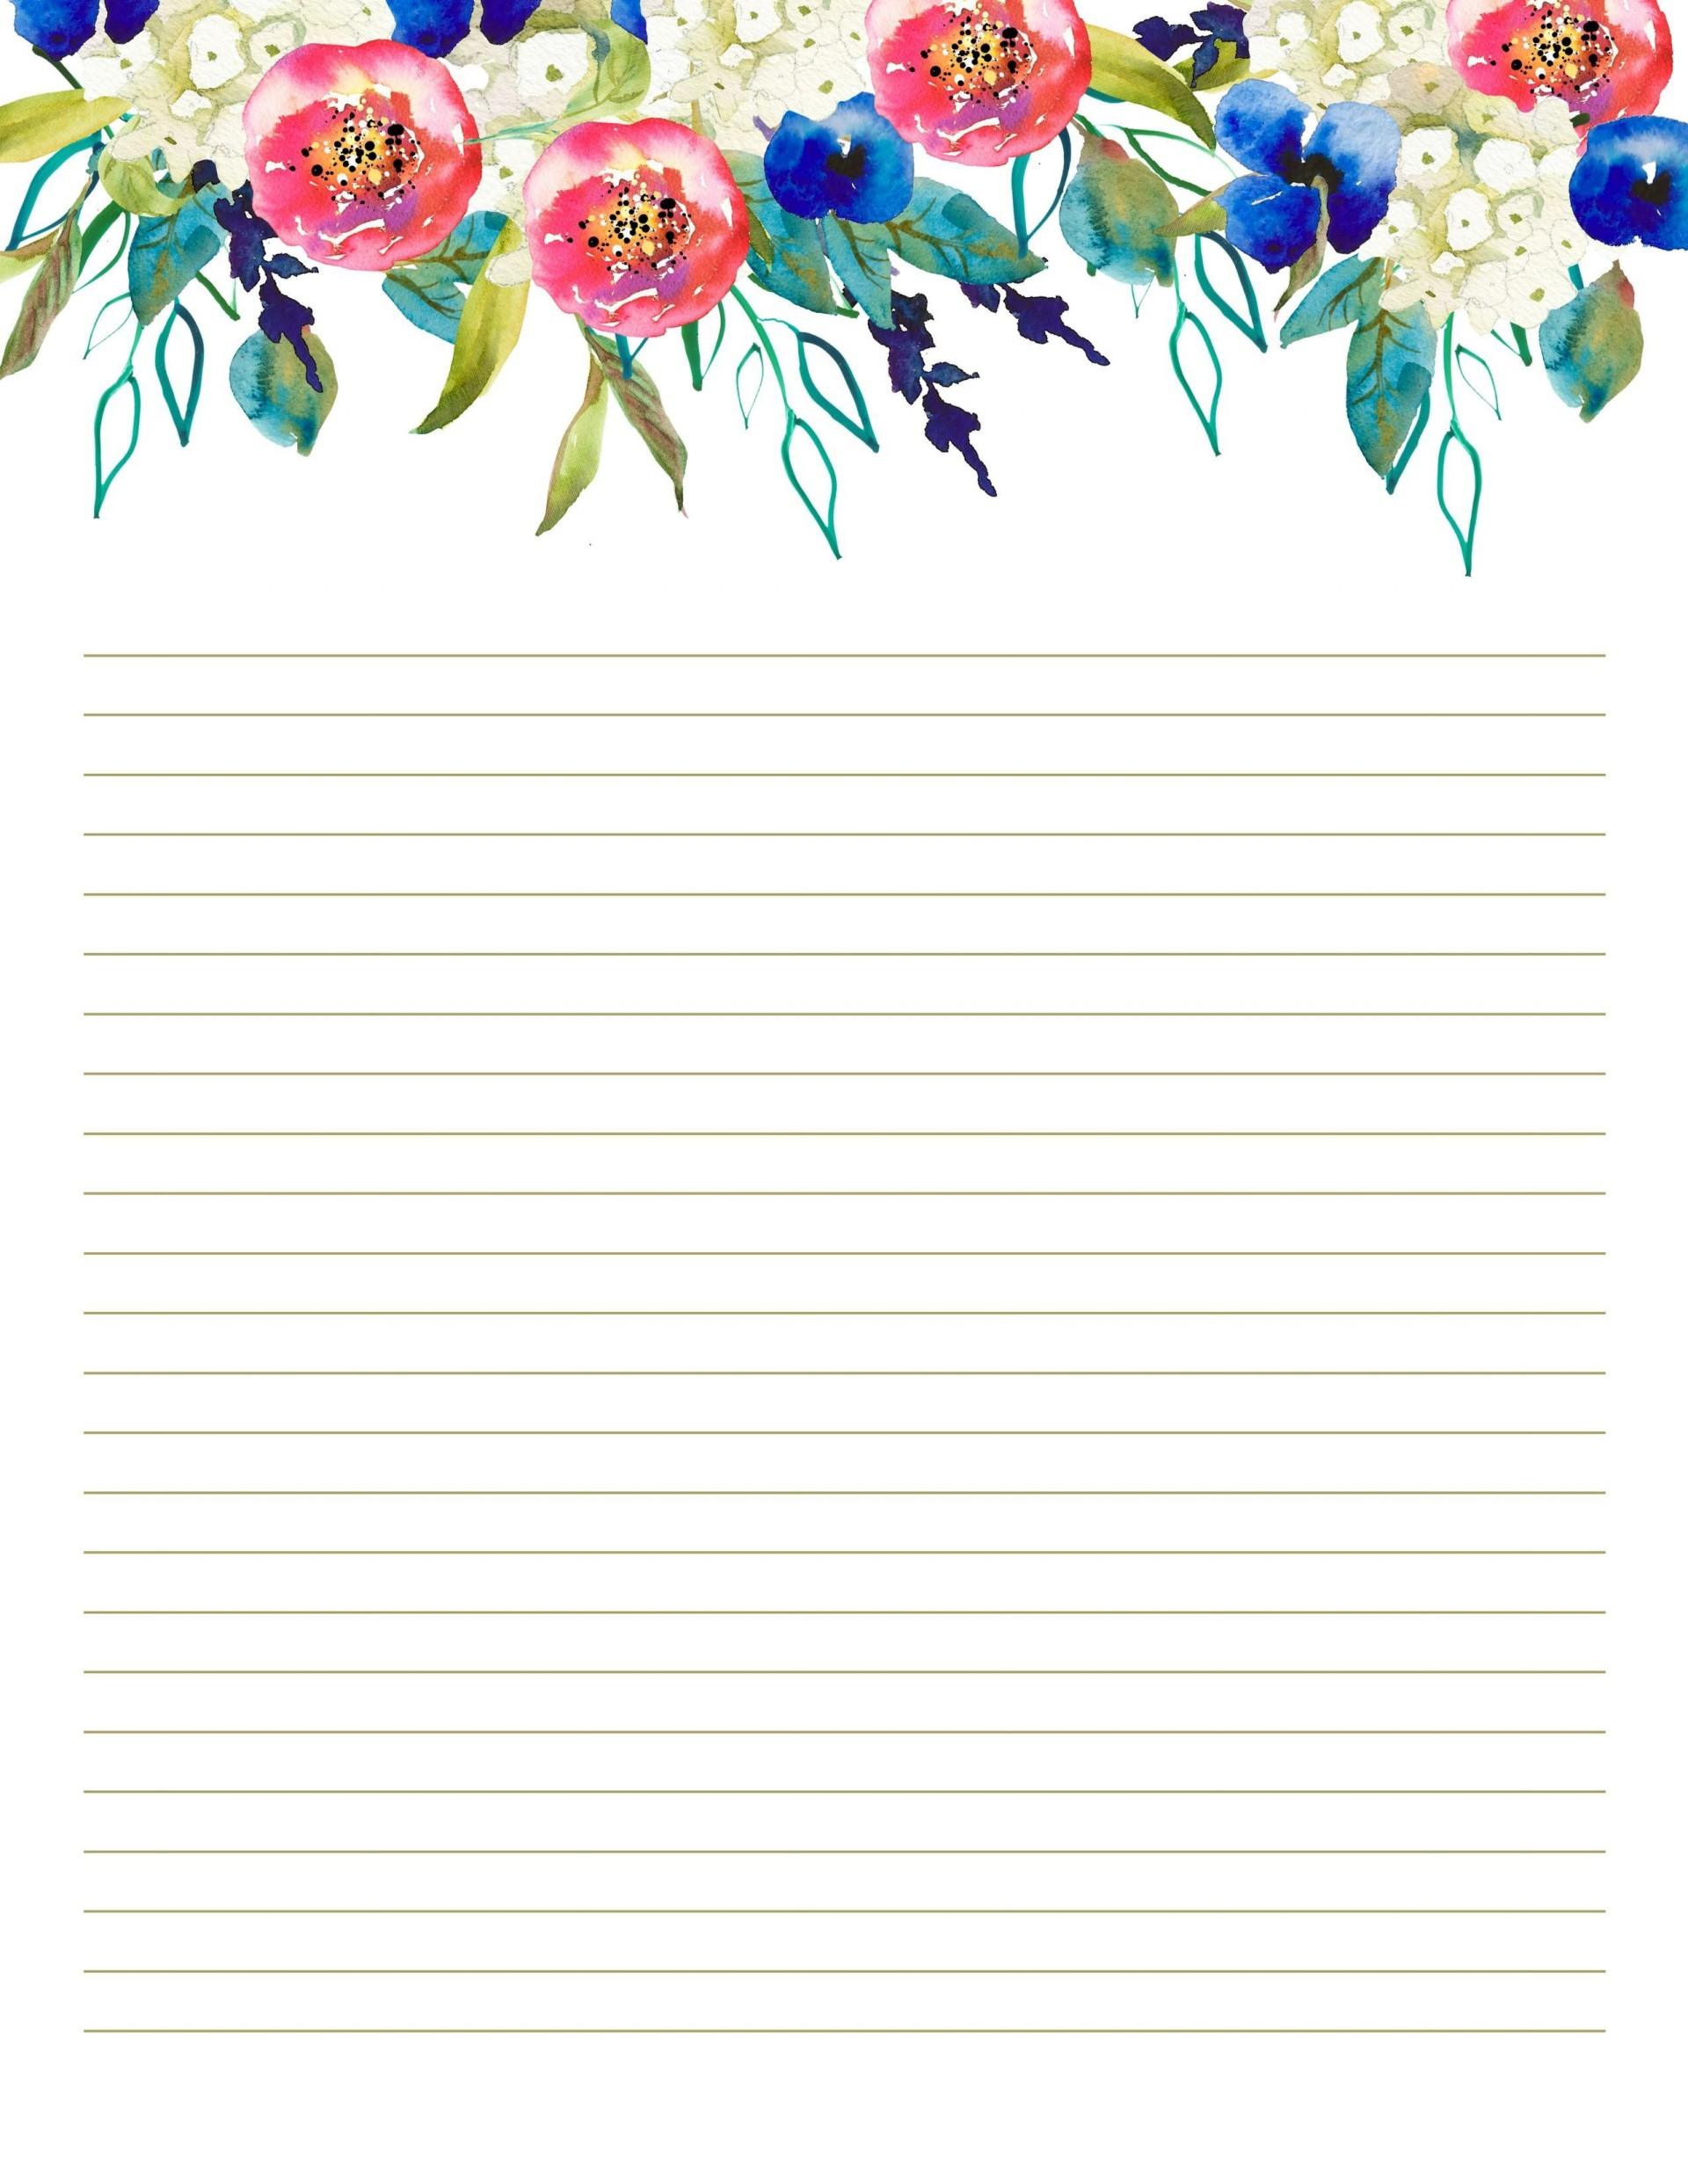 007 Top Free Printable Stationery Paper Template Design  Templates1920